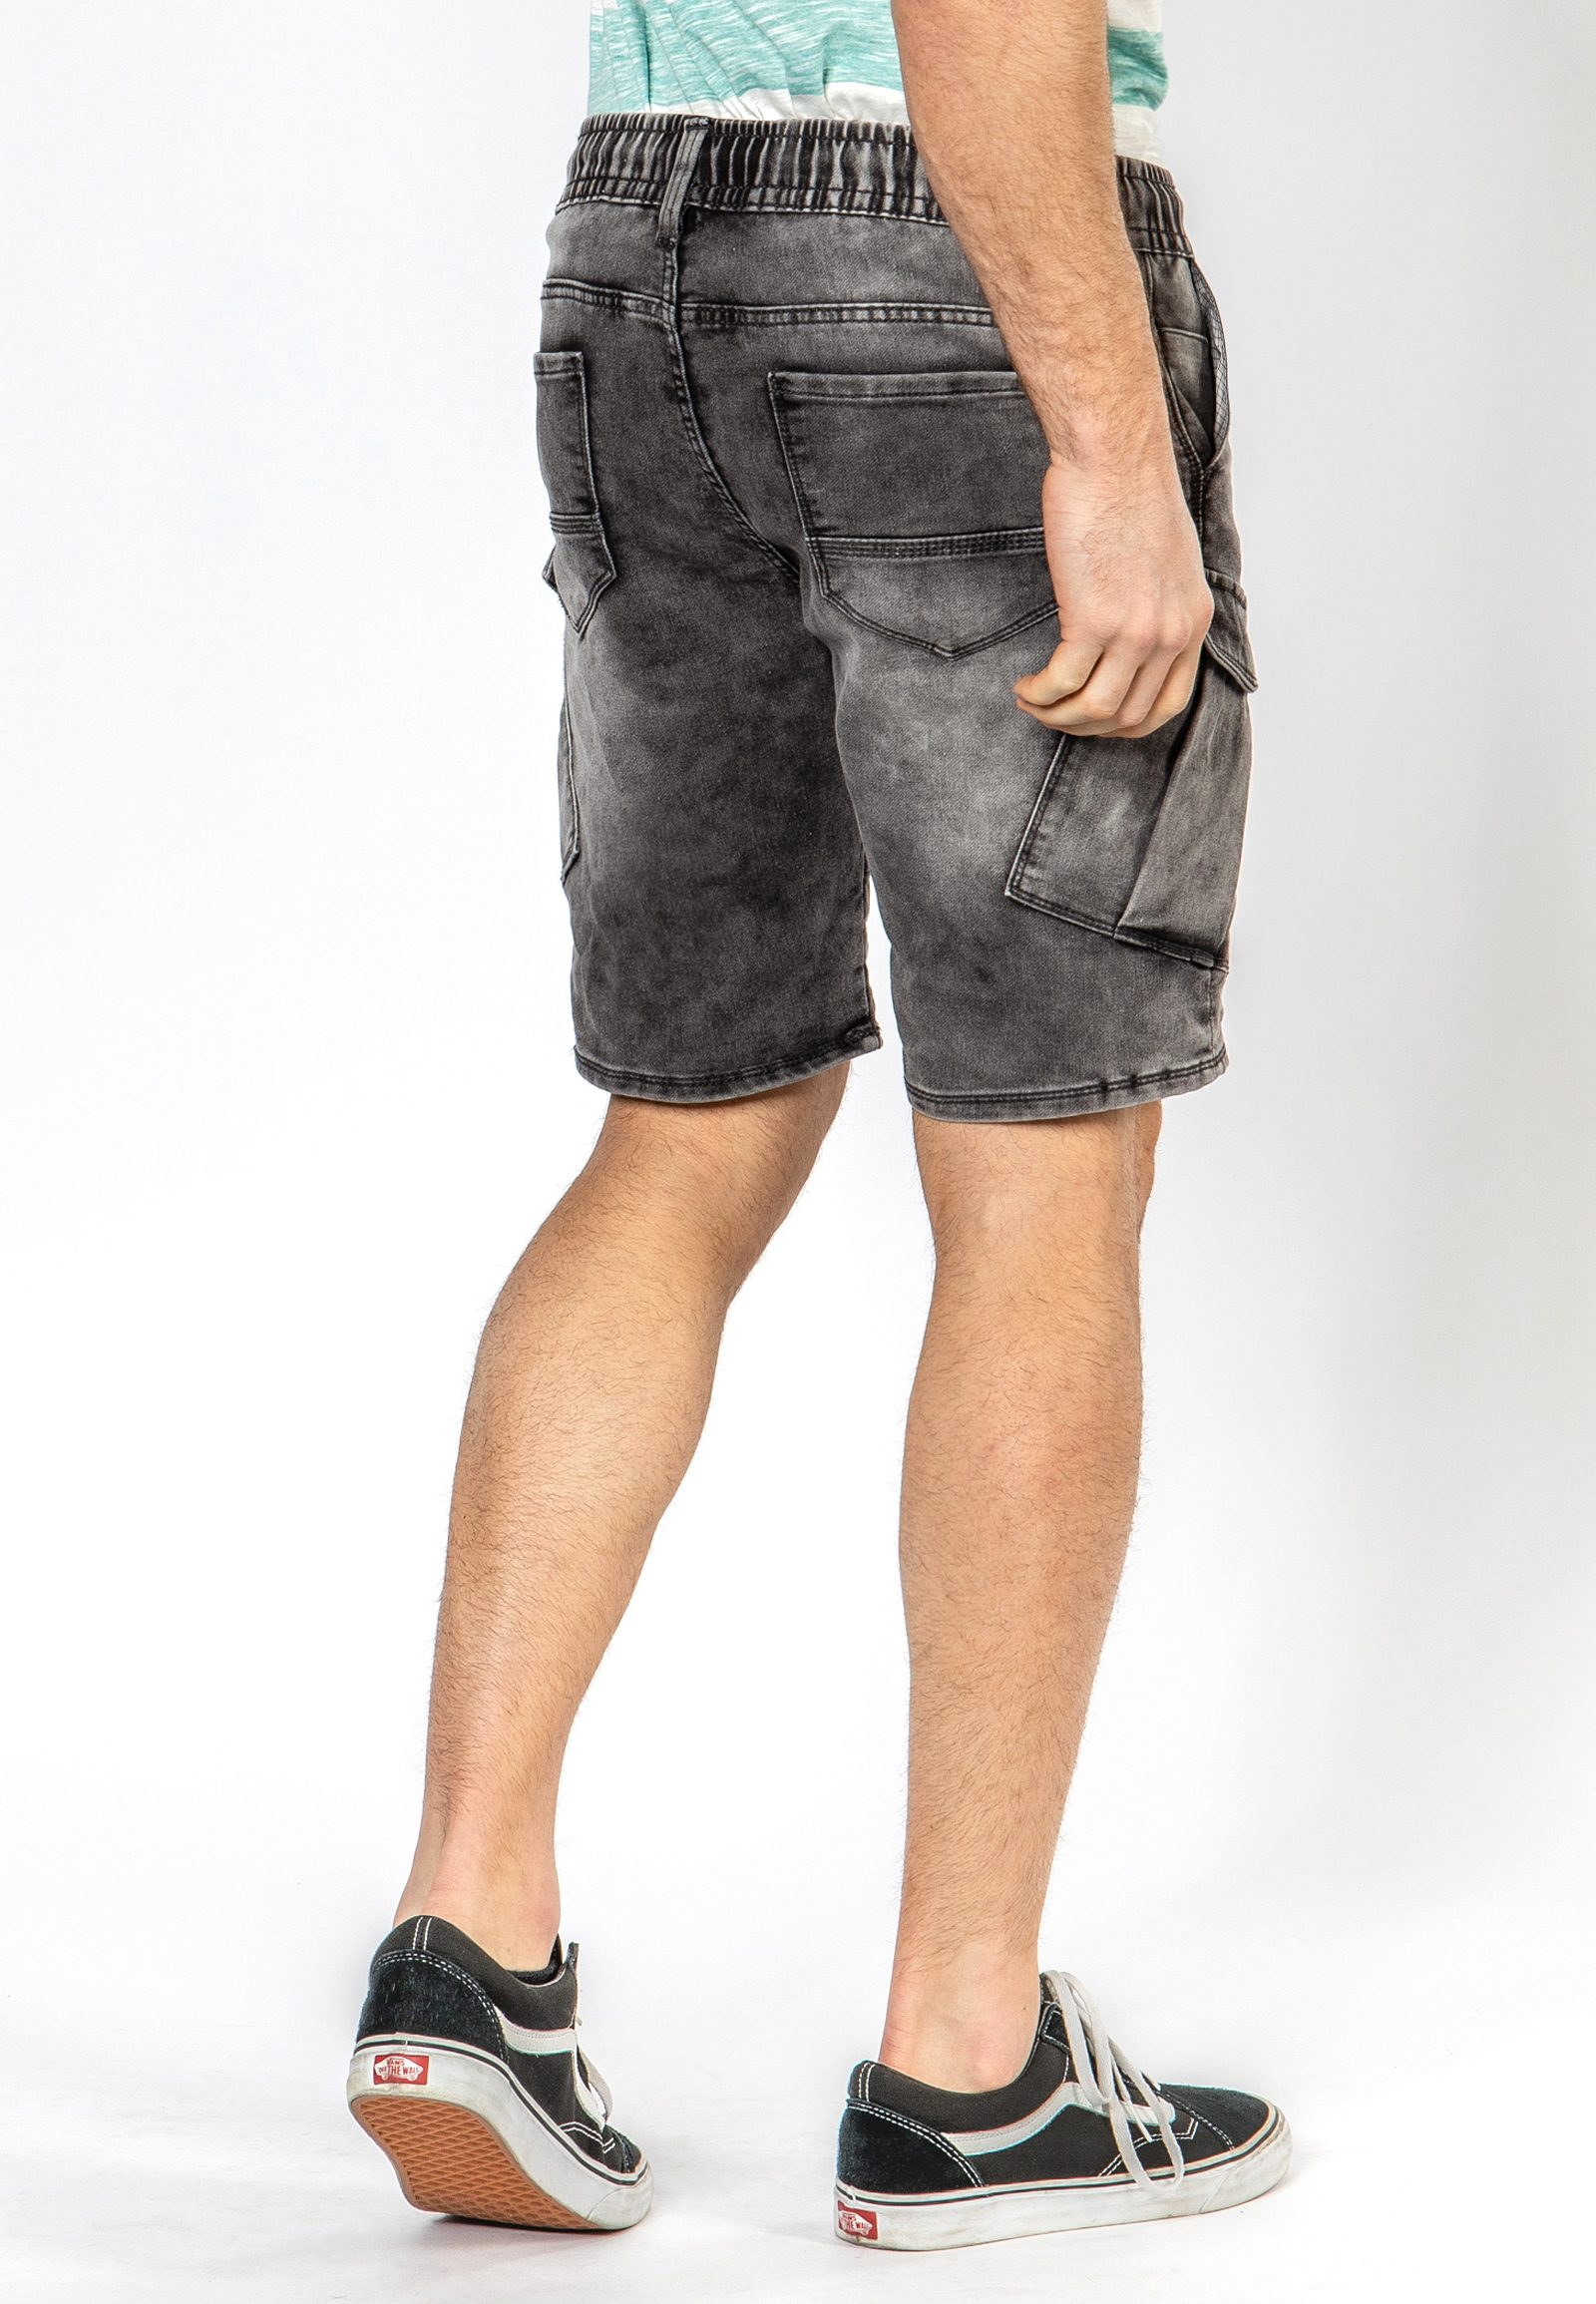 Vorschau: Sweat Denim-Optik Cargo Shorts